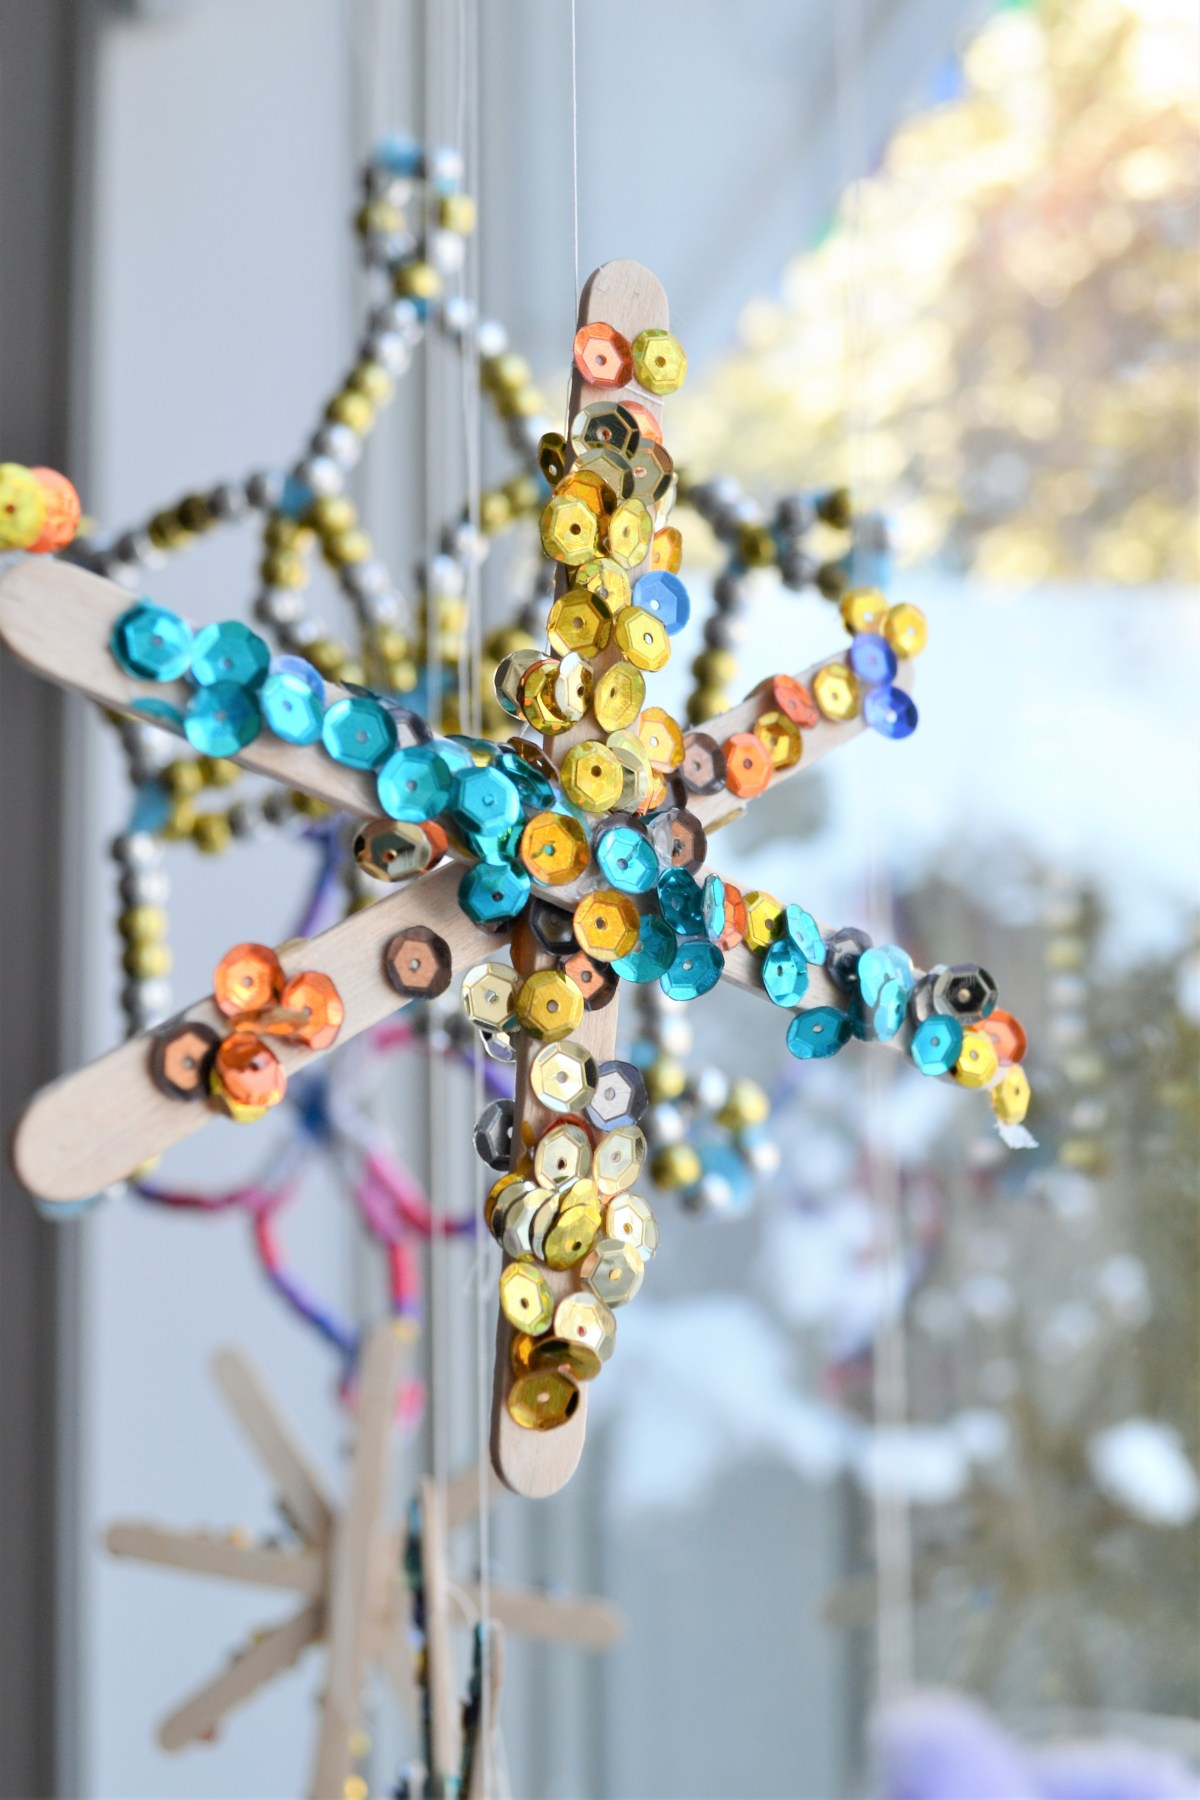 How to Make a Snowflake - hang in window